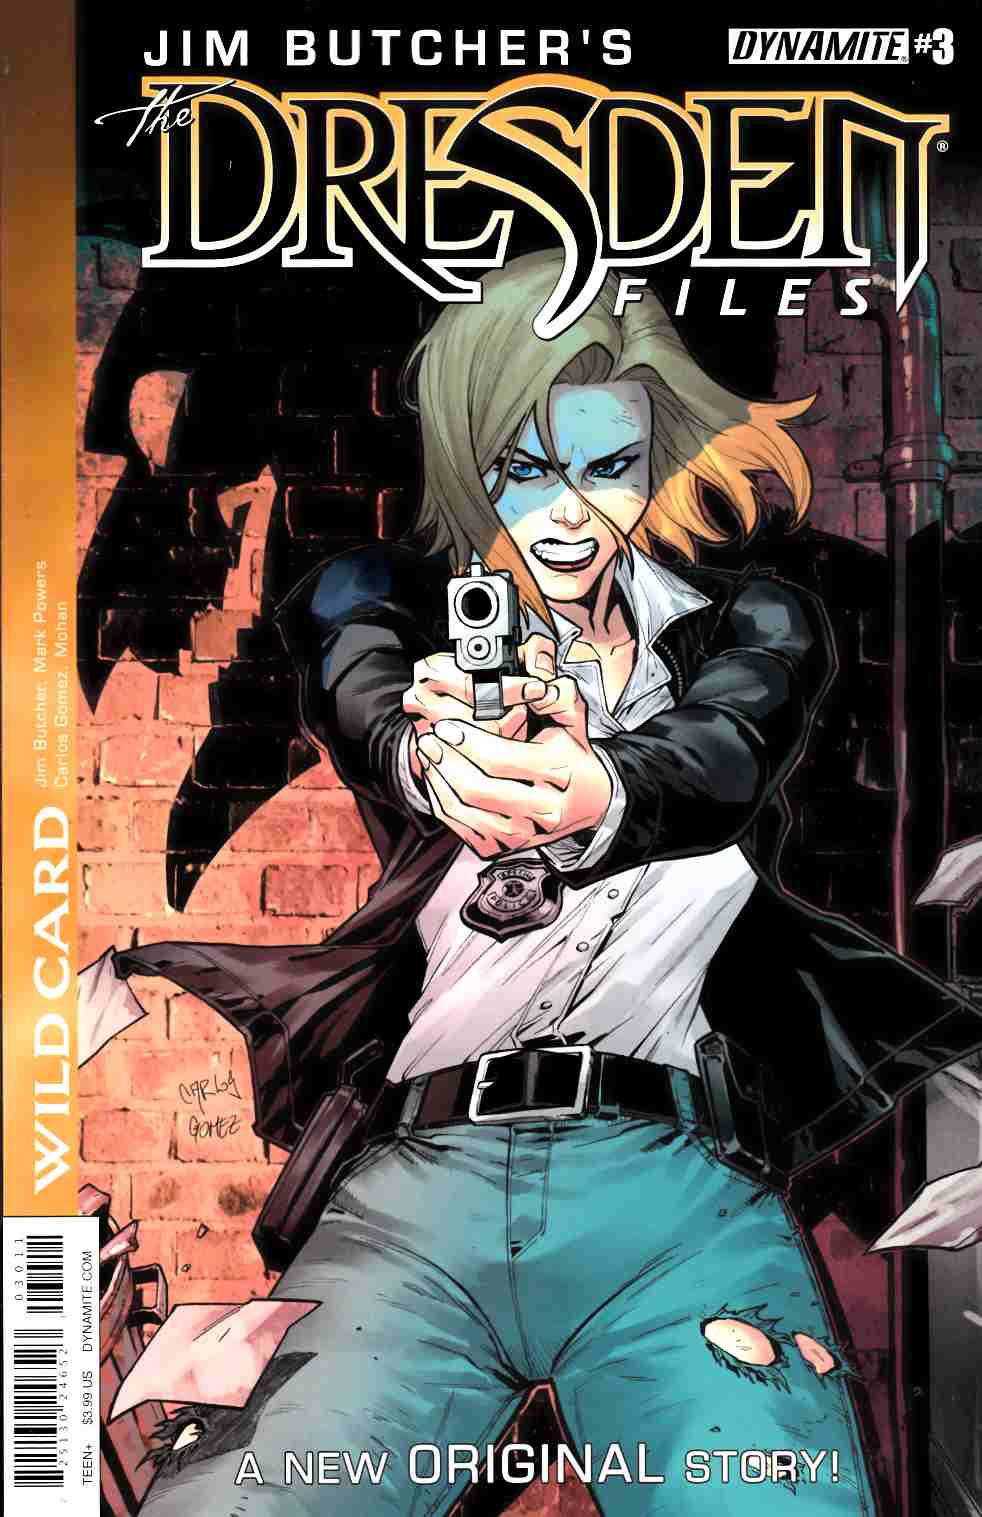 Jim Butcher Dresden Files Wild Card #3 [Dynamite Comic]